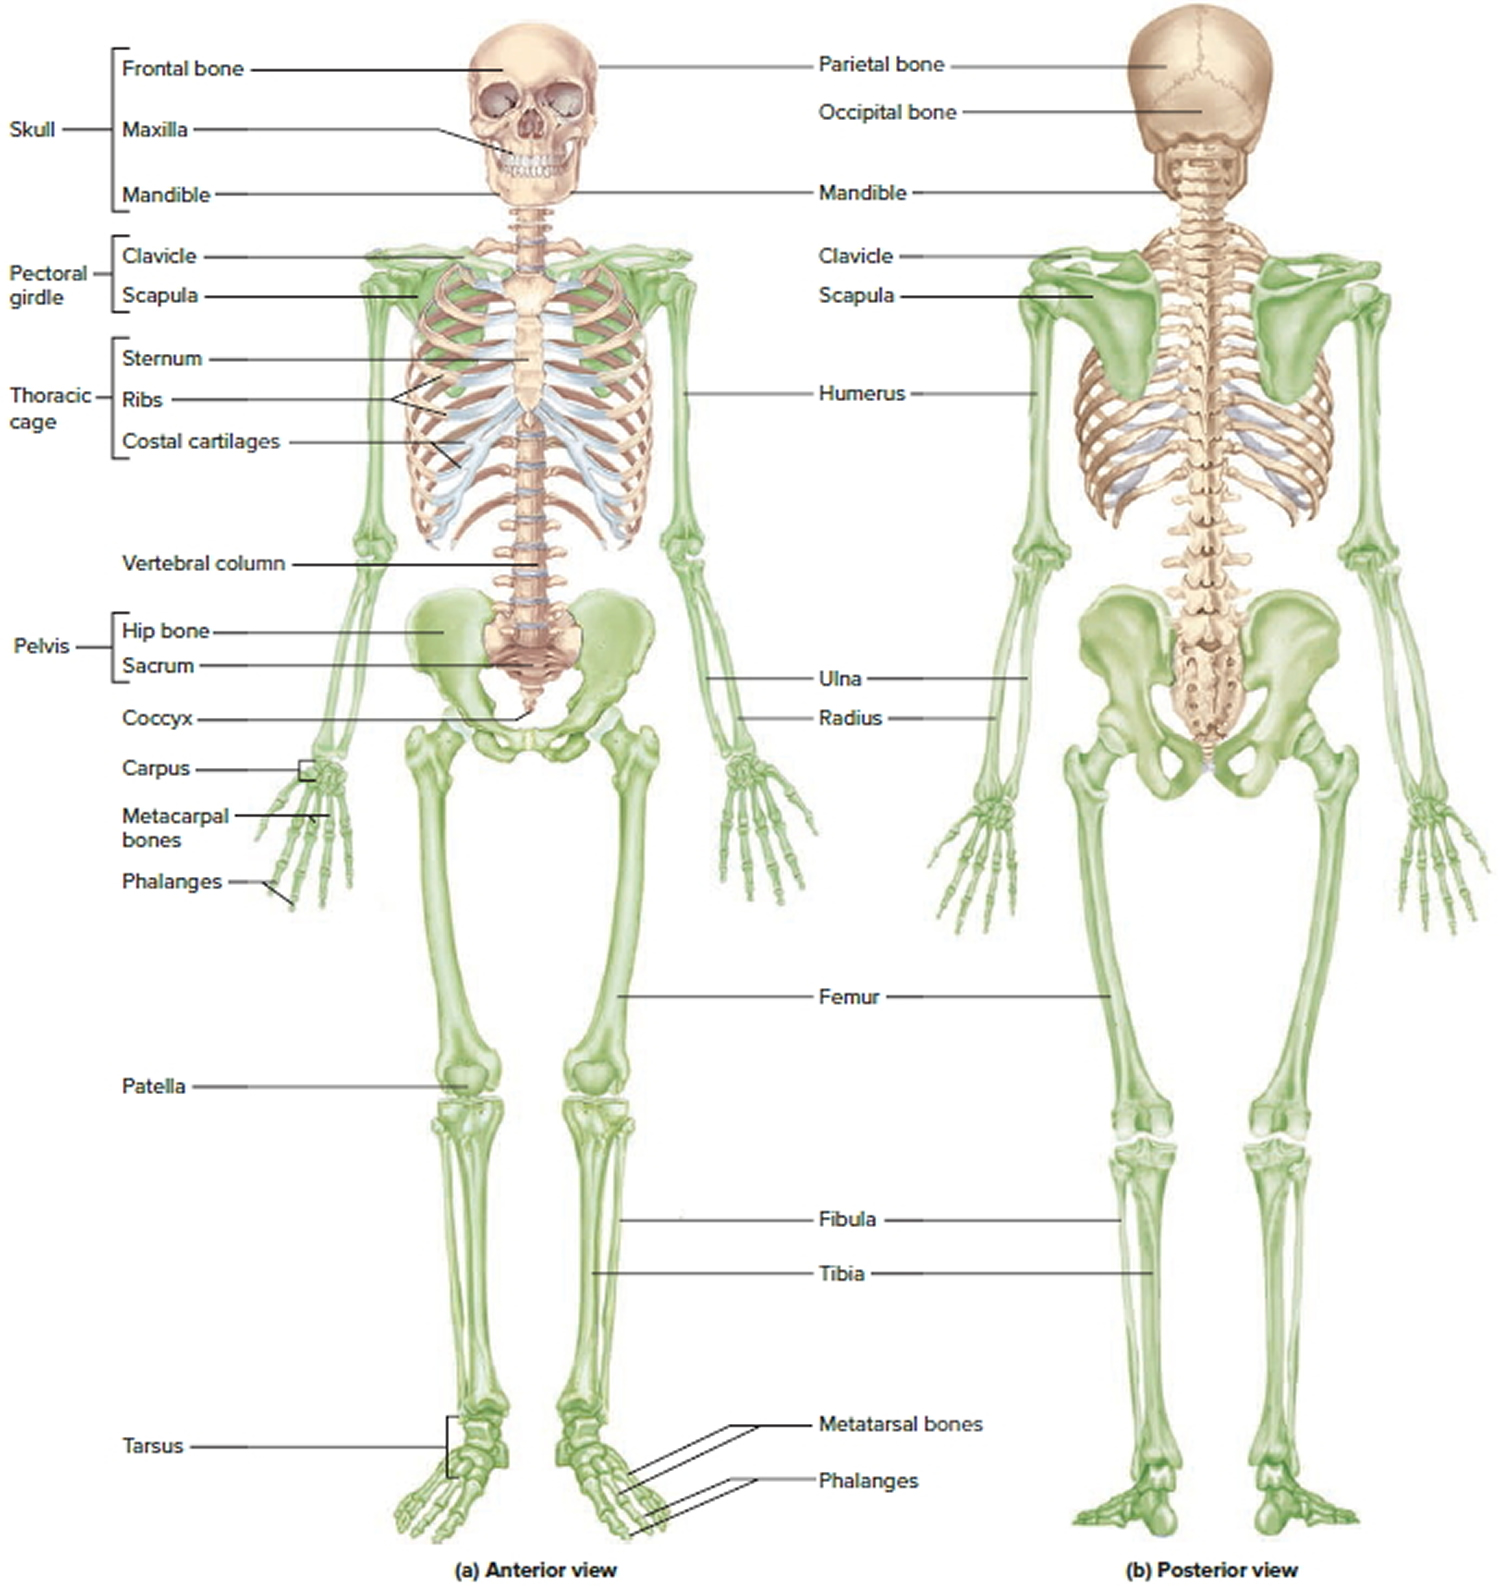 Structure and functions of the human skeleton. Structure of the skeleton